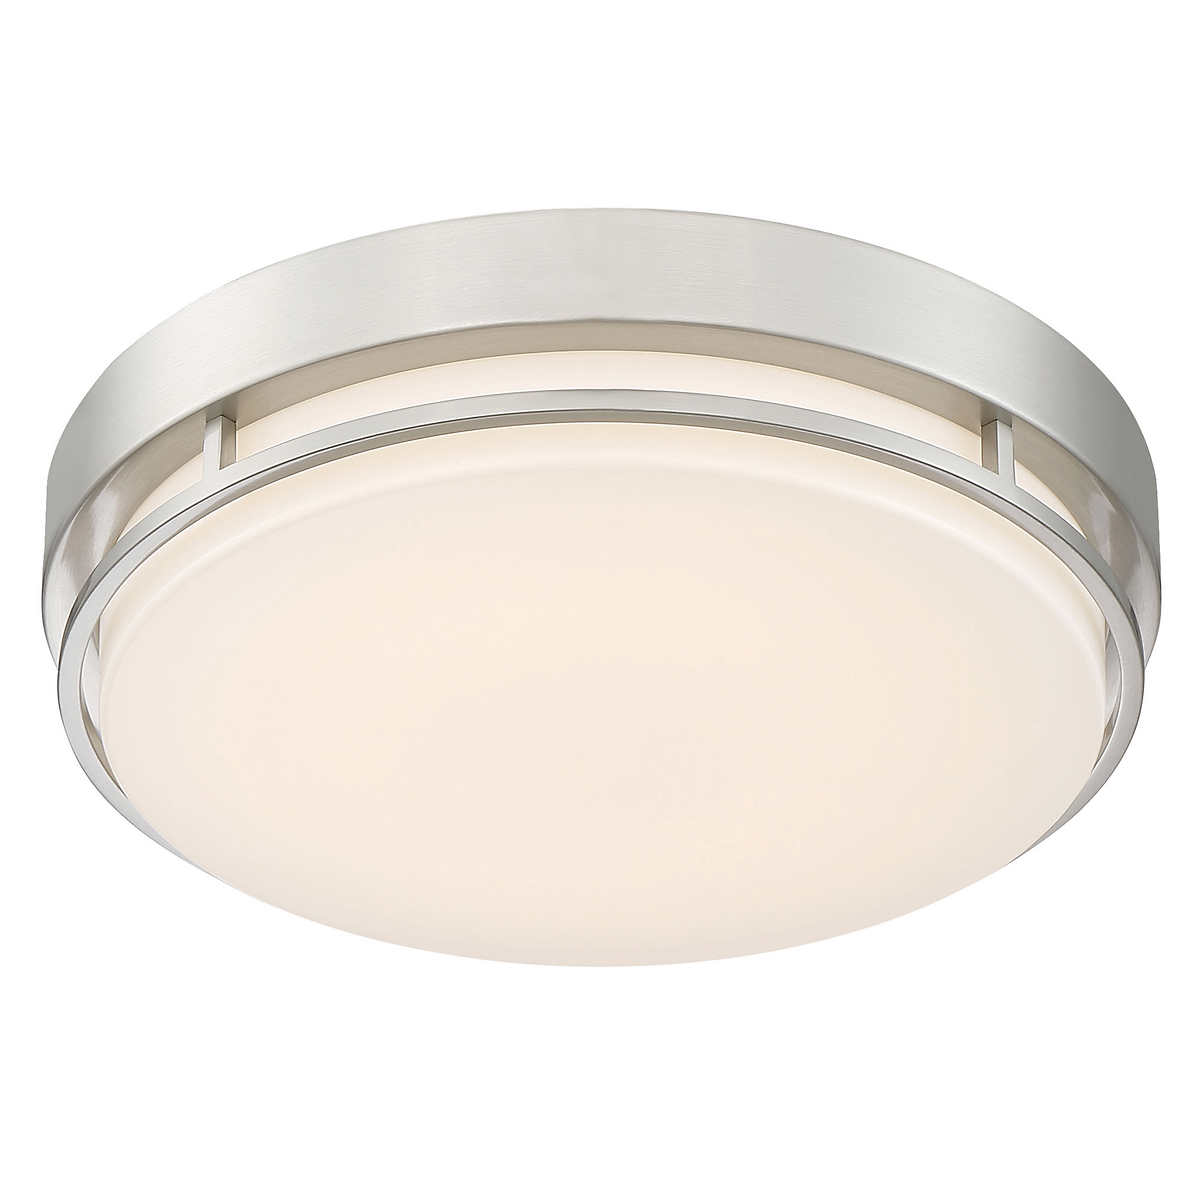 Altair led 14 flushmount light fixture click to zoom arubaitofo Choice Image